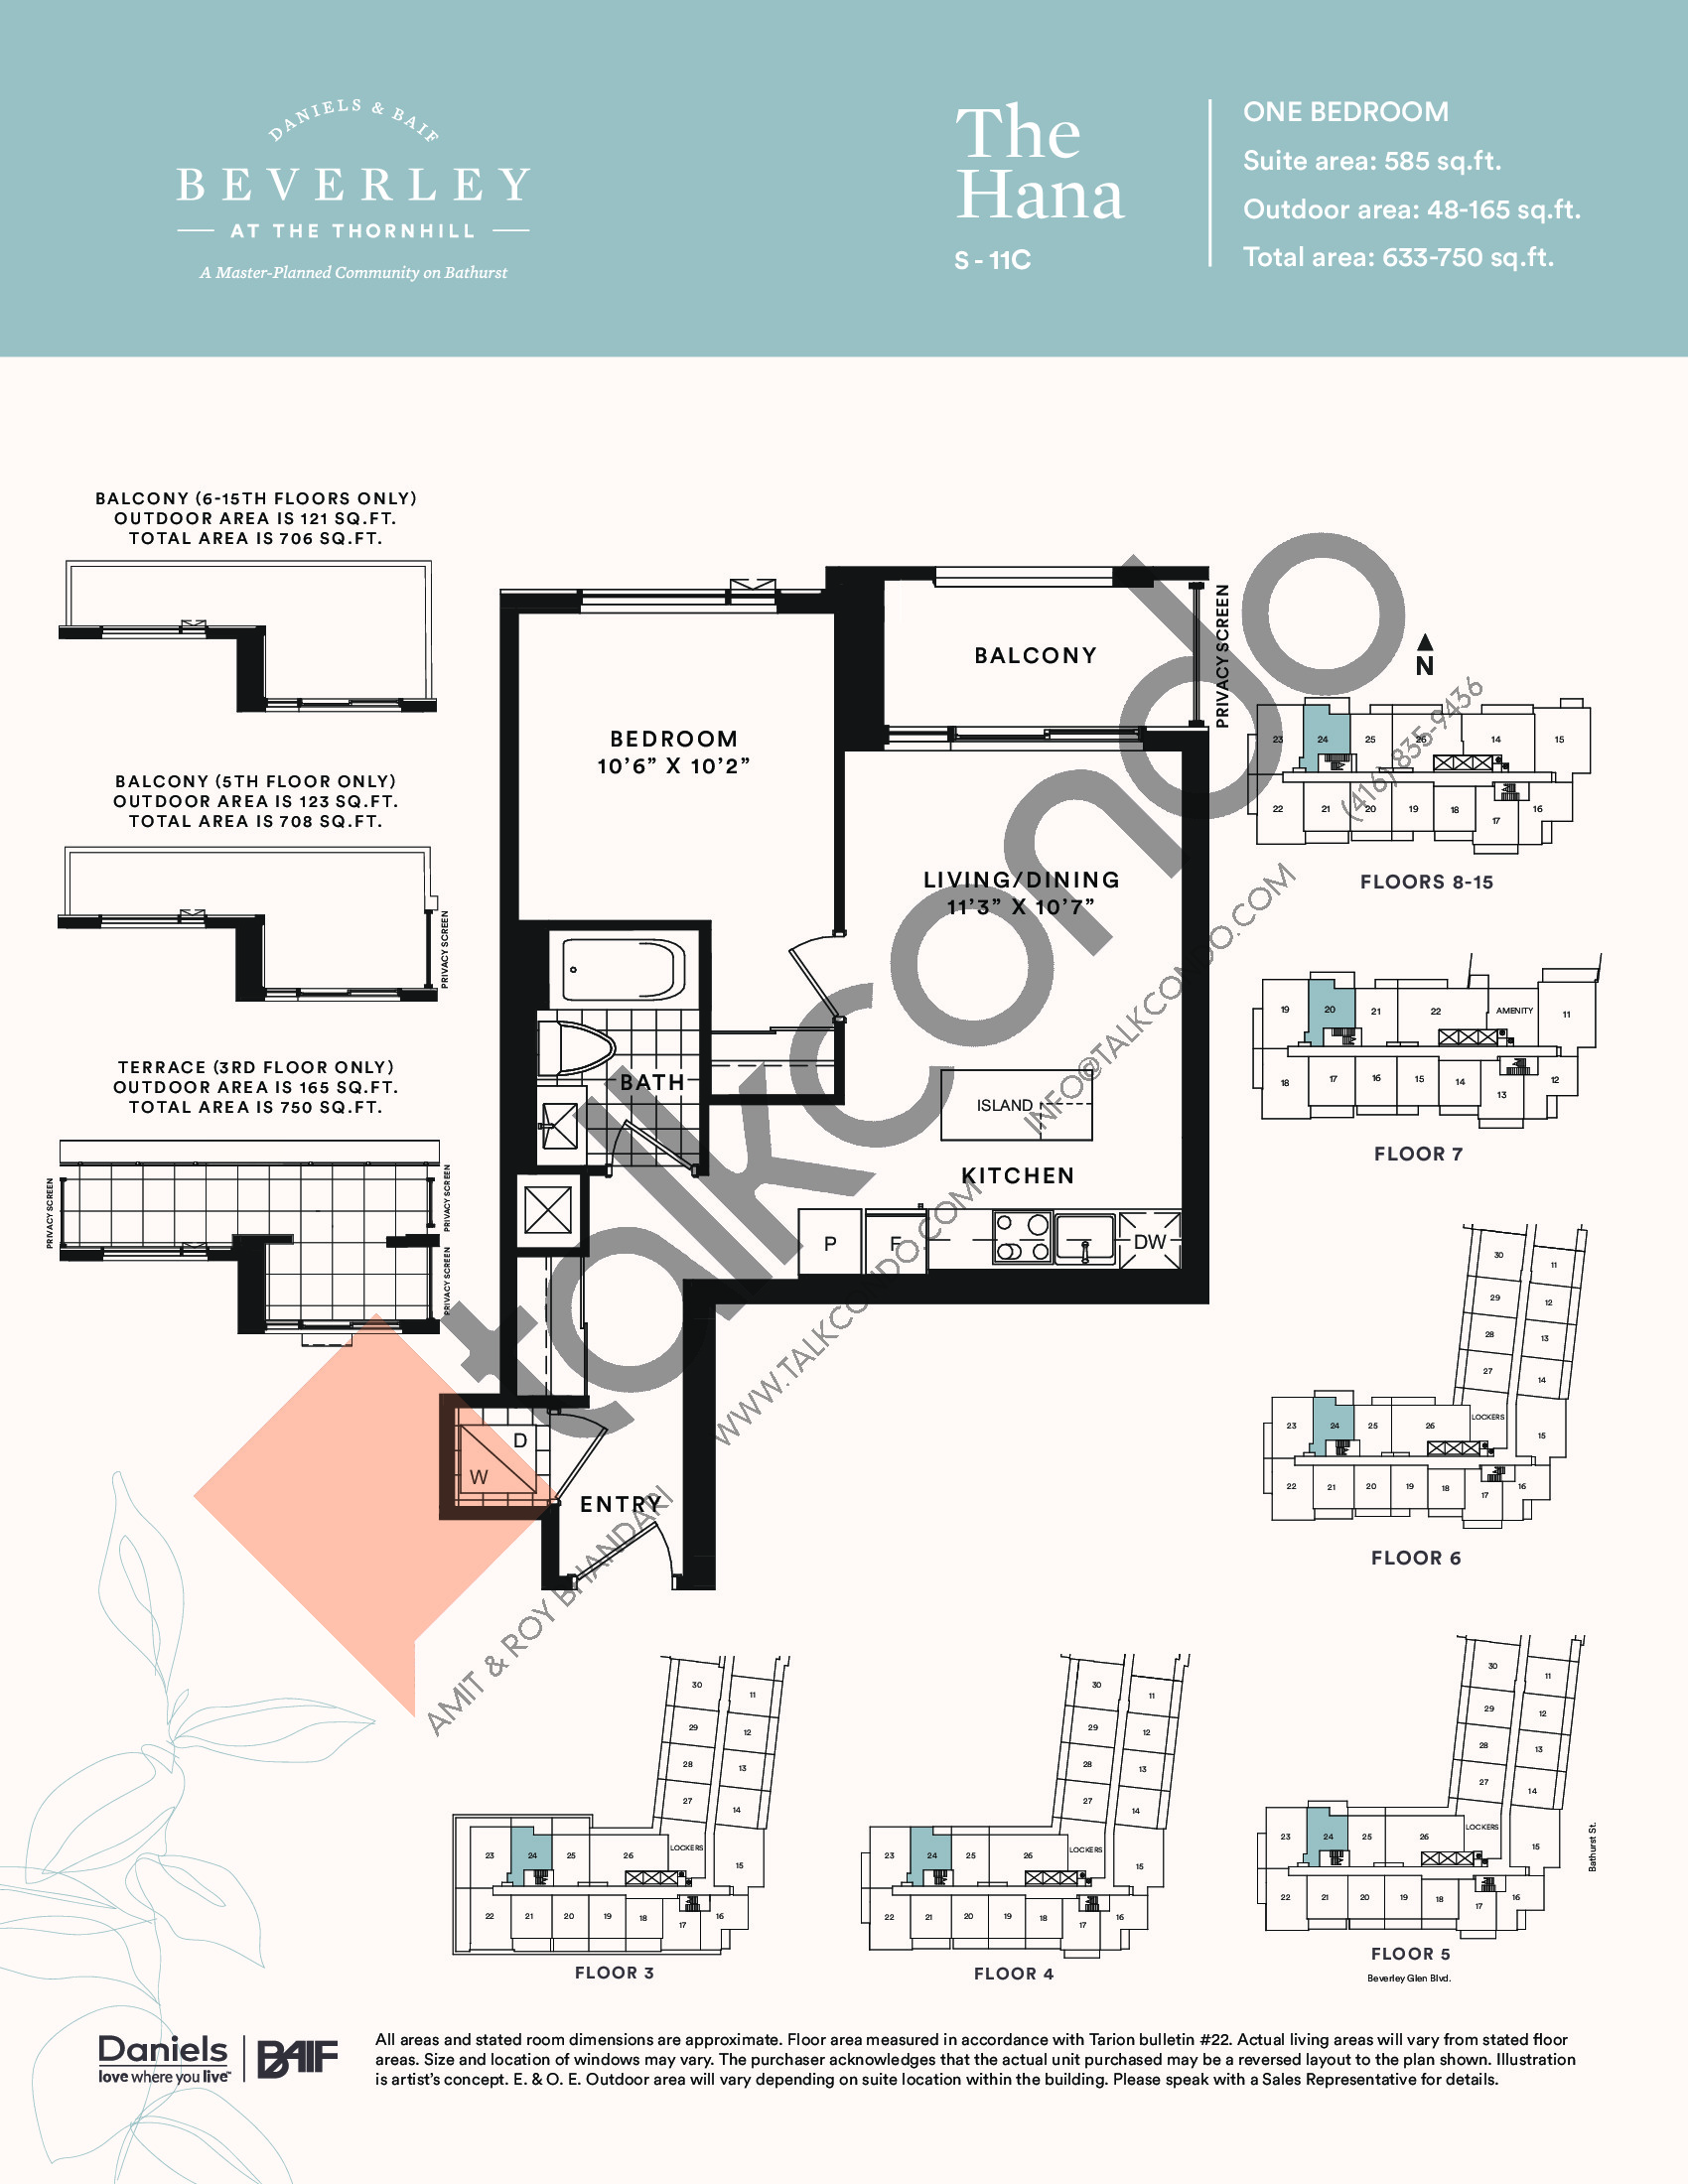 The Hana Floor Plan at The Beverley at the Thornhill Condos - 585 sq.ft